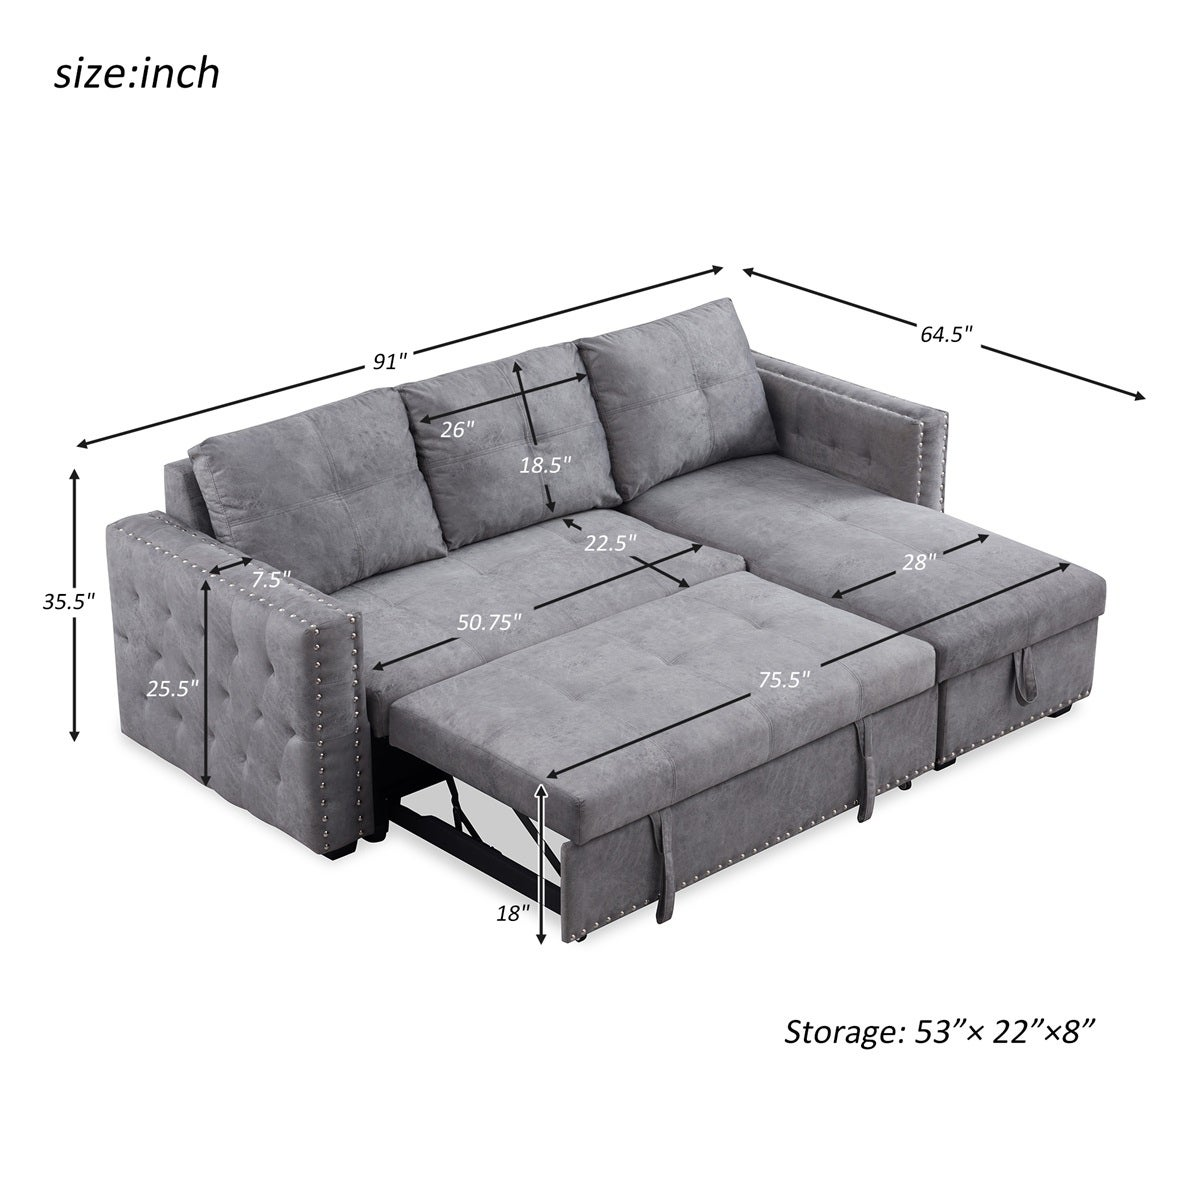 Merax 91 Inch Reversible Sleeper Sectional Sofa With Storage Chaise And Pull Out Bed Nailhead Overstock 31813473